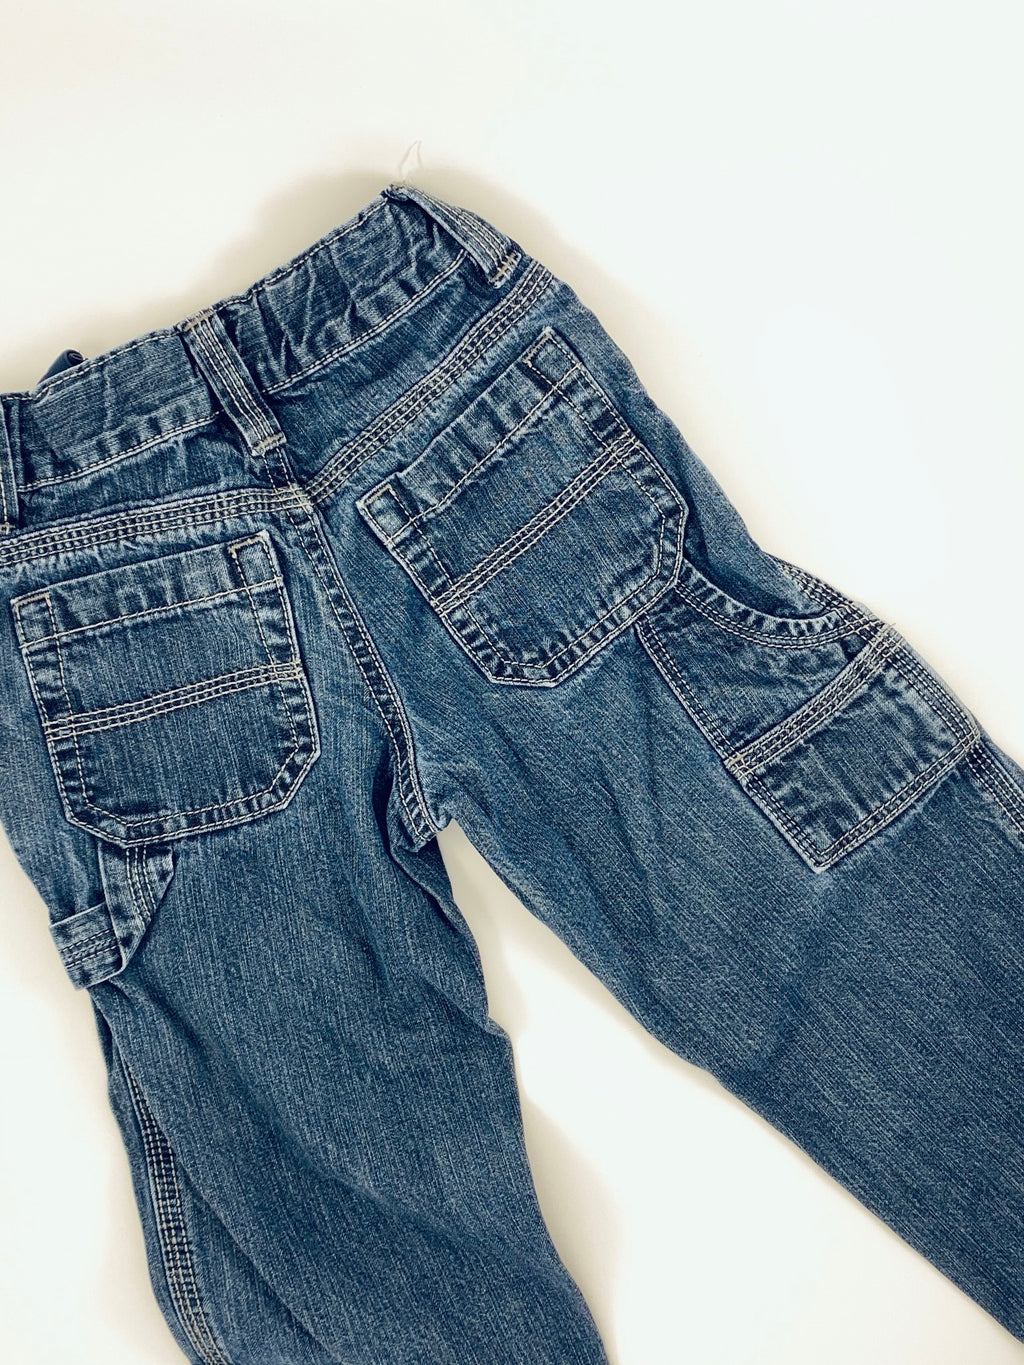 Boy's Pants - Size 3t